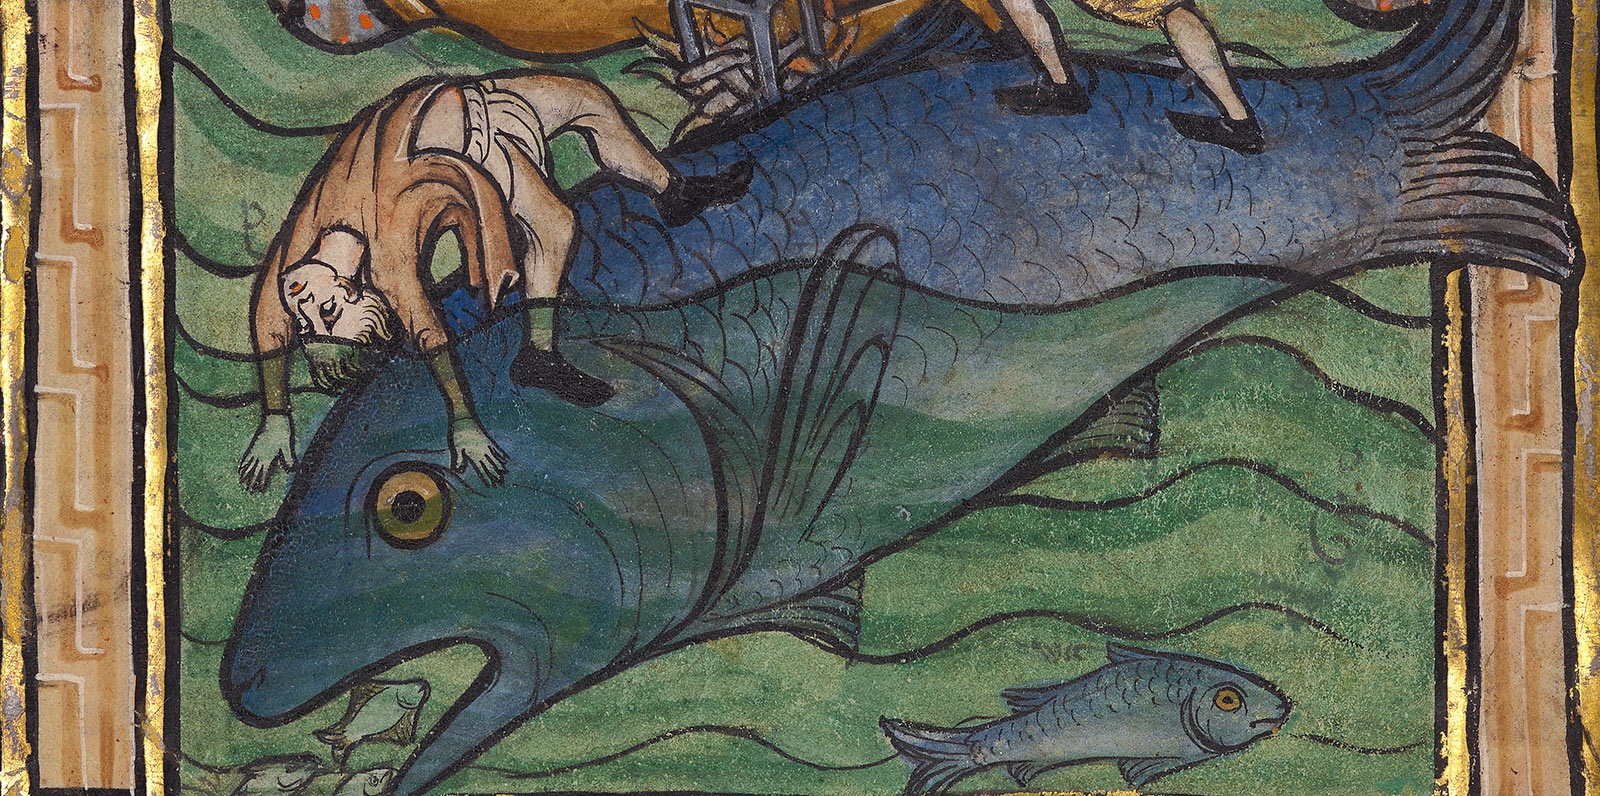 A man is carried away in the water by a large fish-shaped whale